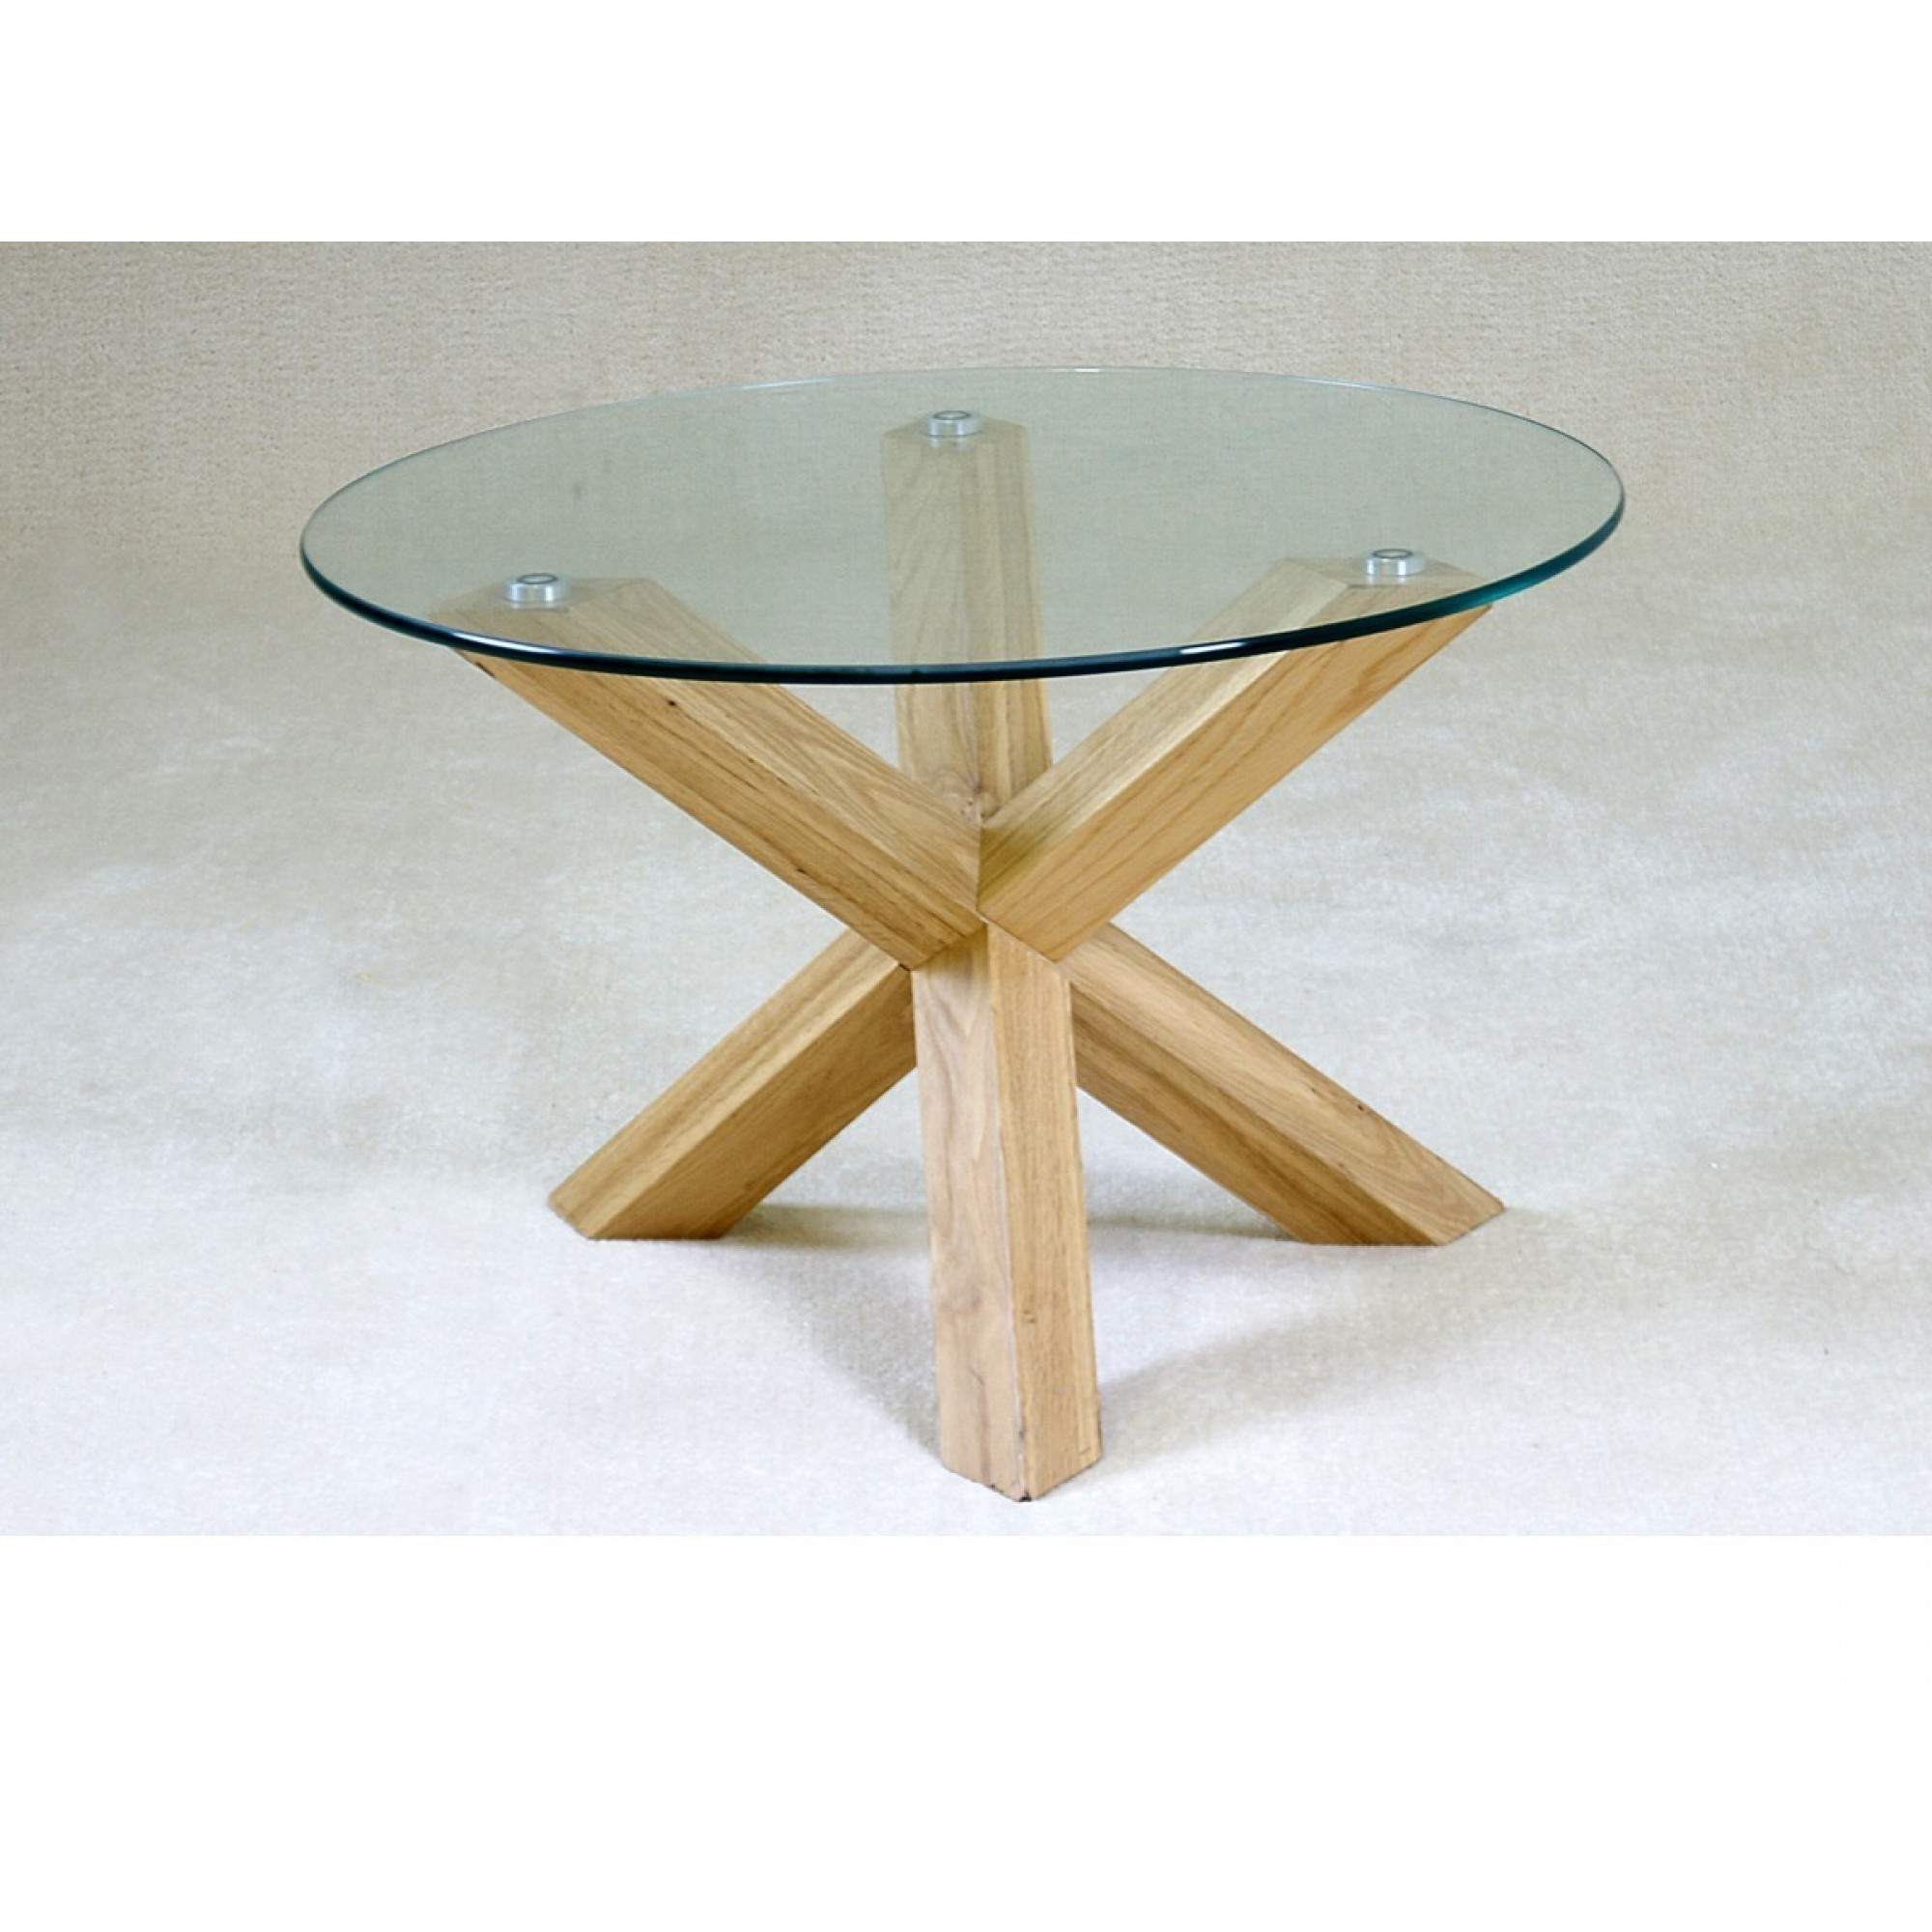 Table Round Glass Coffee With Wood Base Sunroom Top Table For Widely Used Eames Style Dining Tables With Chromed Leg And Tempered Glass Top (Gallery 18 of 30)